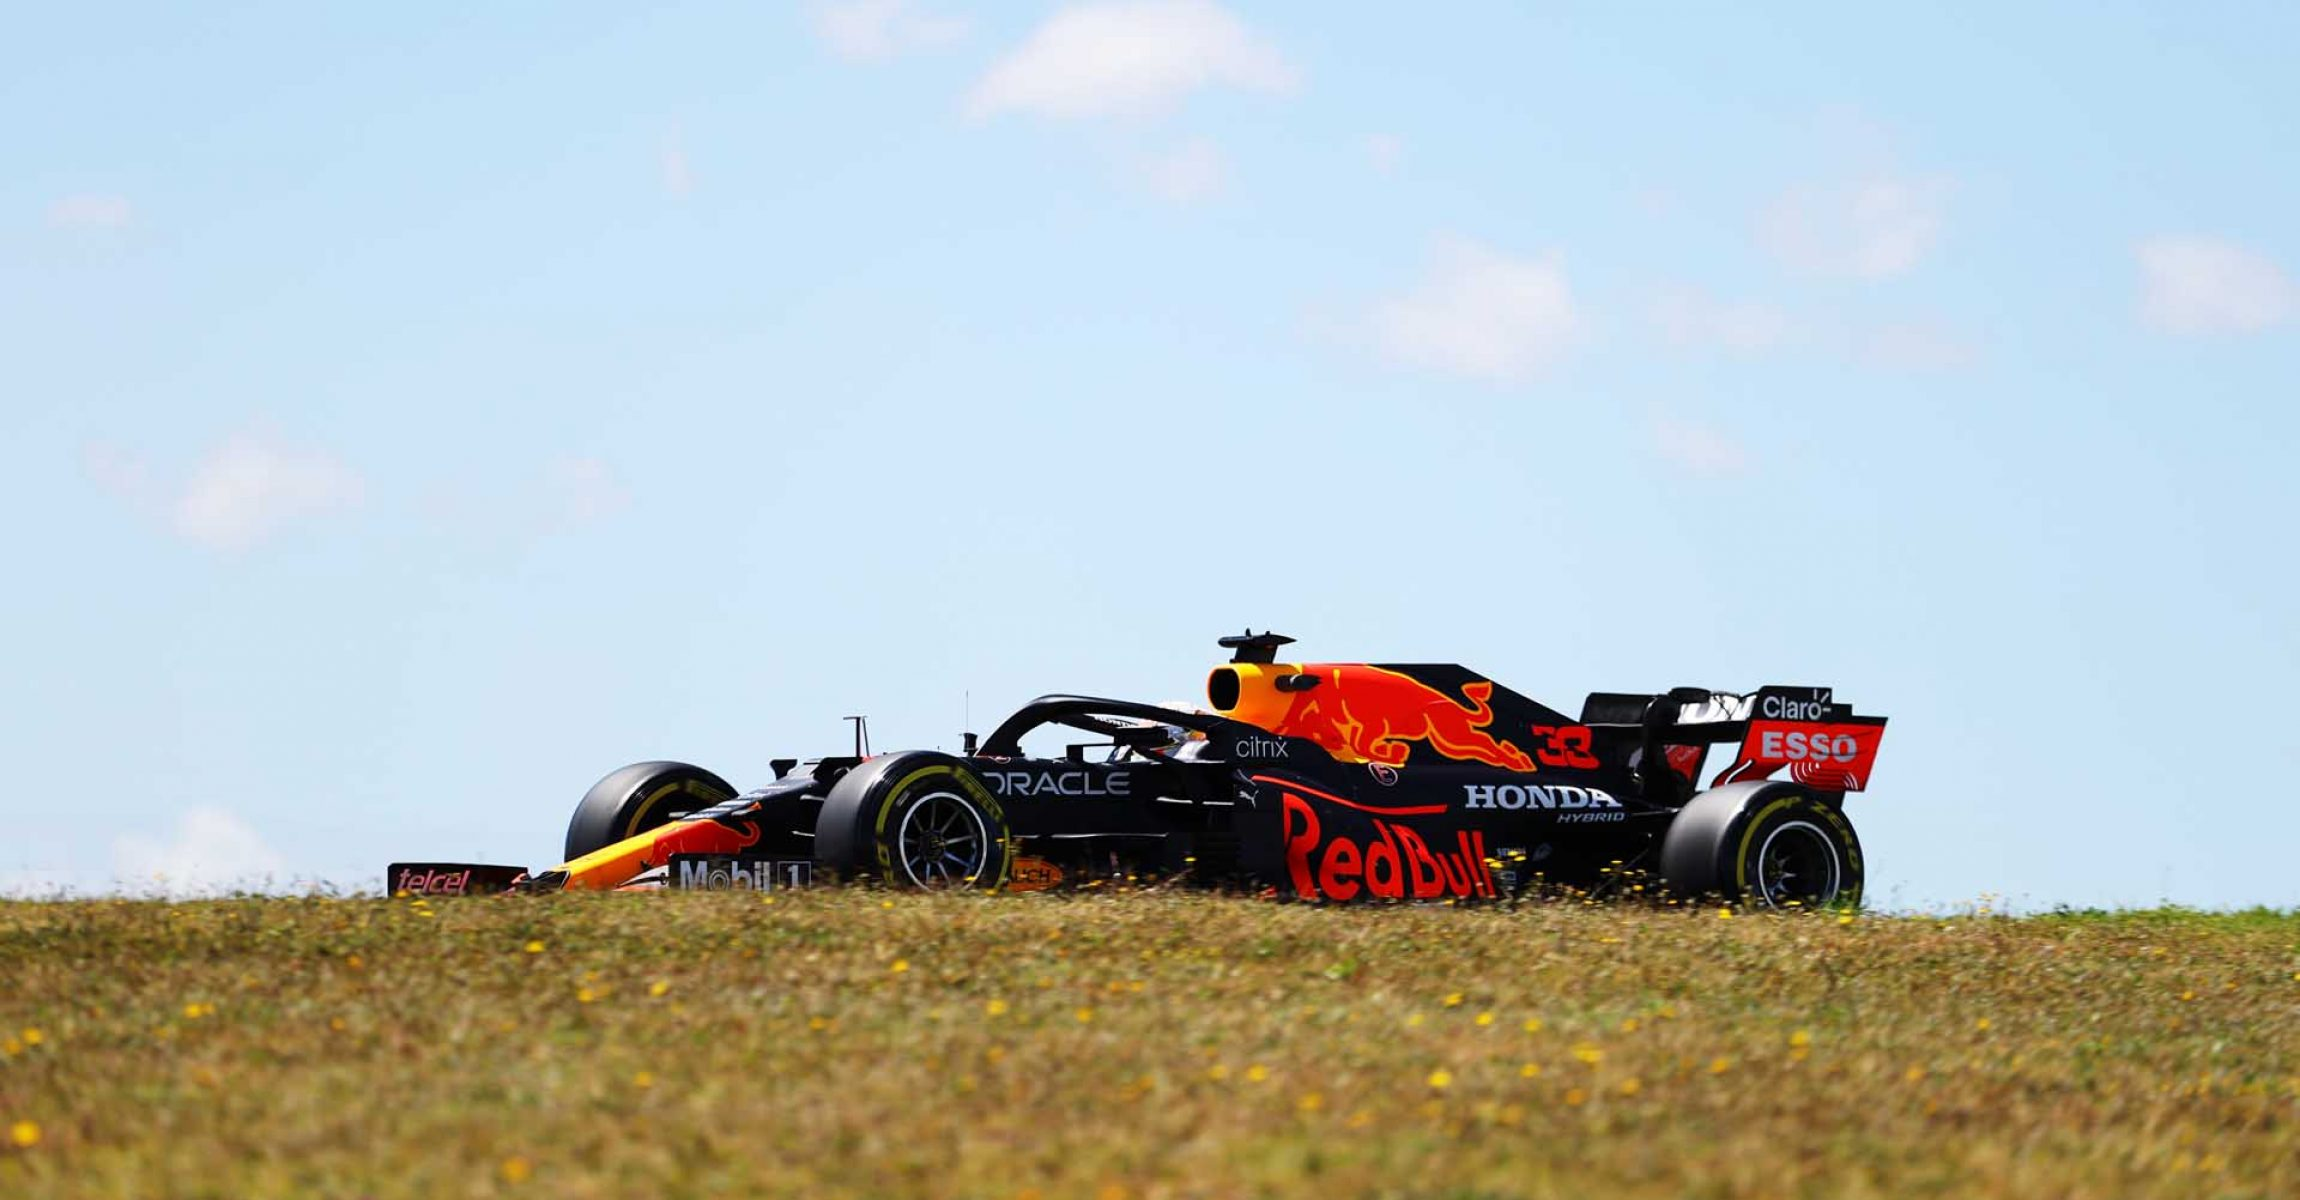 PORTIMAO, PORTUGAL - APRIL 30: Max Verstappen of the Netherlands driving the (33) Red Bull Racing RB16B Honda on track during practice ahead of the F1 Grand Prix of Portugal at Autodromo Internacional Do Algarve on April 30, 2021 in Portimao, Portugal. (Photo by Bryn Lennon/Getty Images)